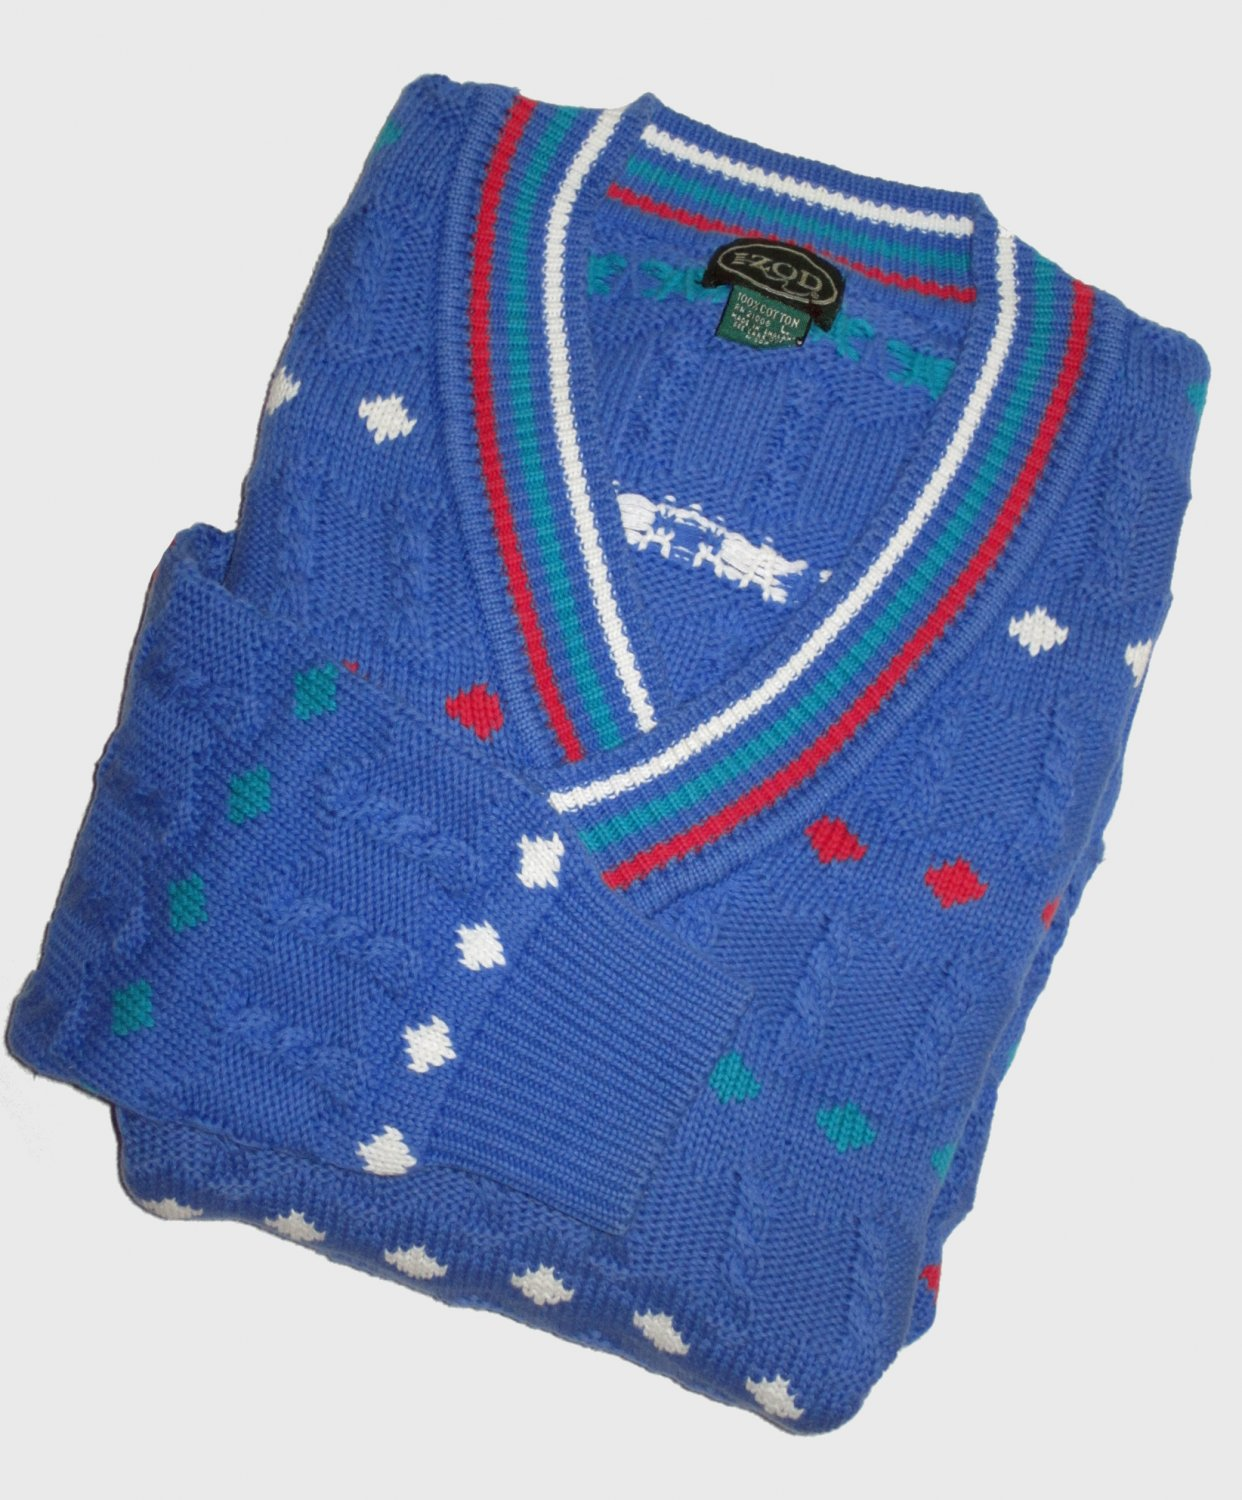 NWT Izod Men's Blue Cable Knit Cotton Golf Sweater Size Large  308